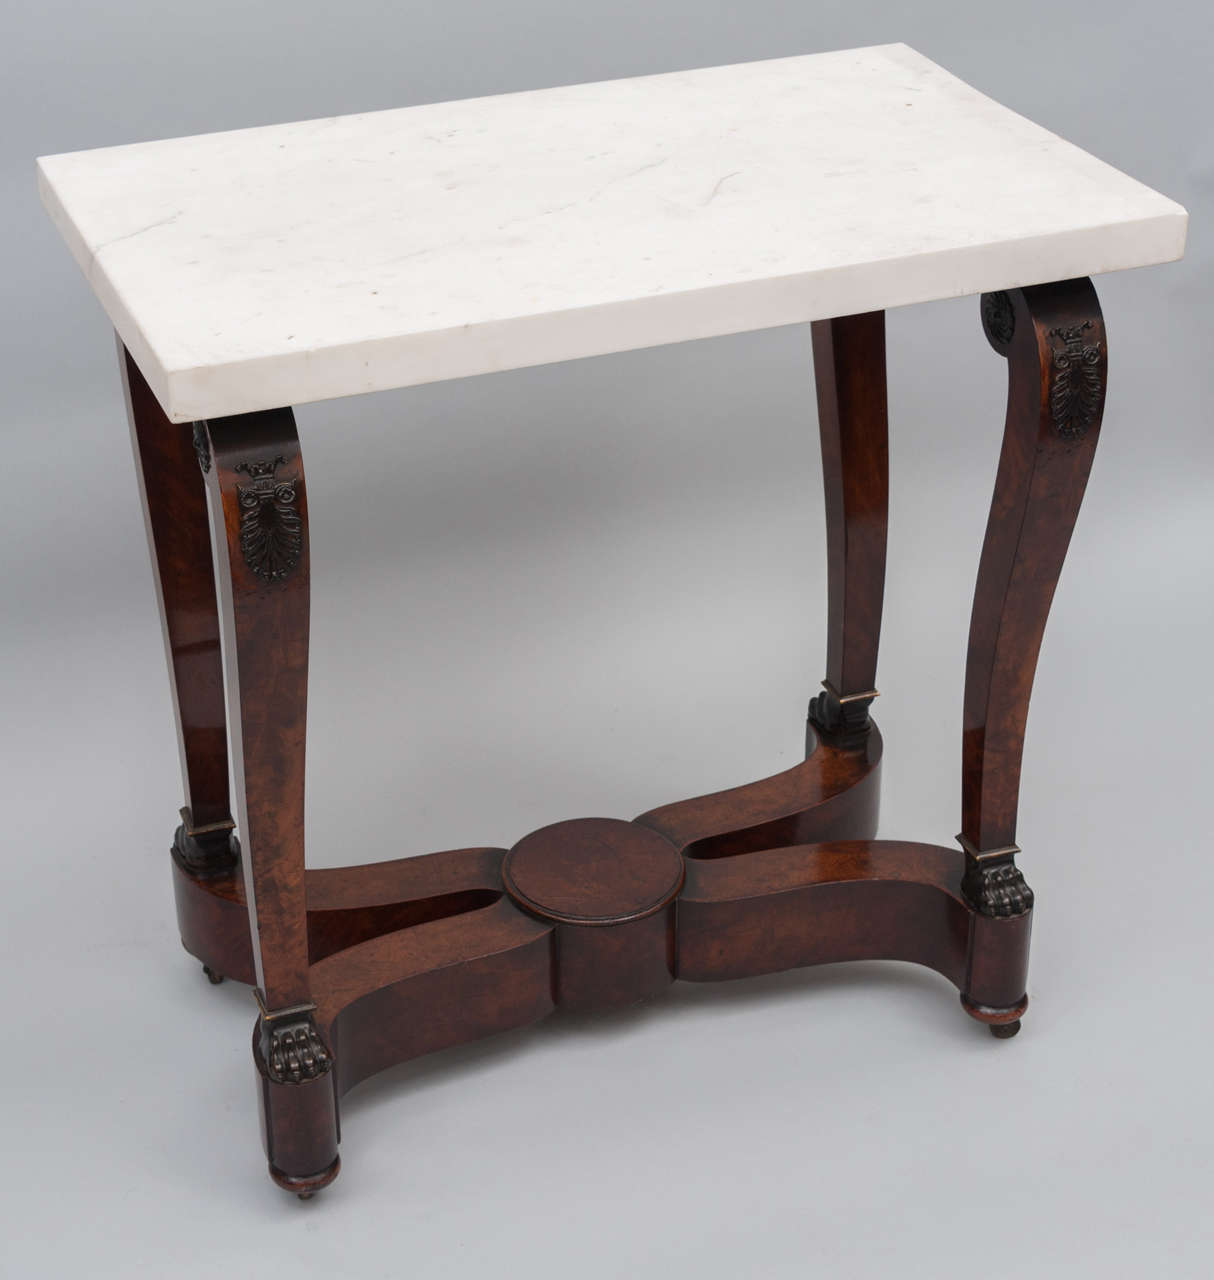 A good quality early 19th century French empire centre table of figured mahogany. The white statuary deep marble top set on scroll supports mounted with bronze anthemions and rosettes terminating in bronze lion paw feet, onto on a bold swept x-frame